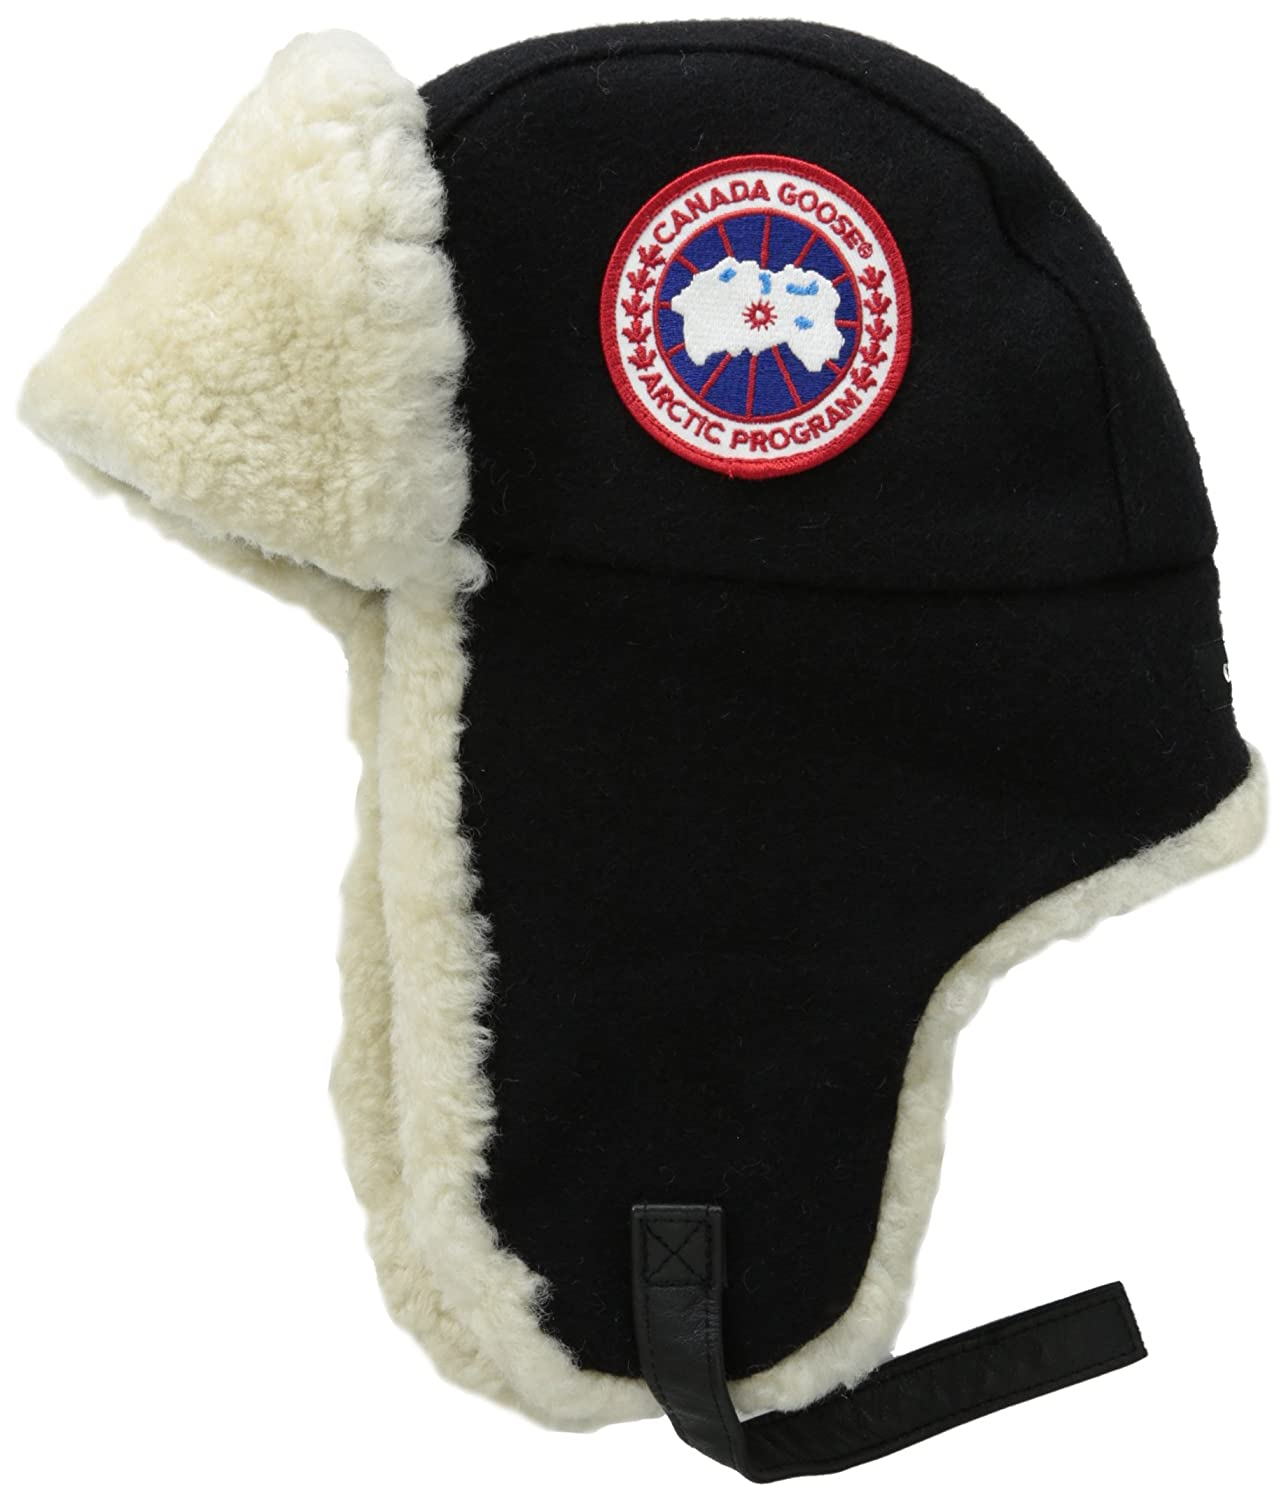 Pilot Hat Amazon Wool Shearling Pilot Hat